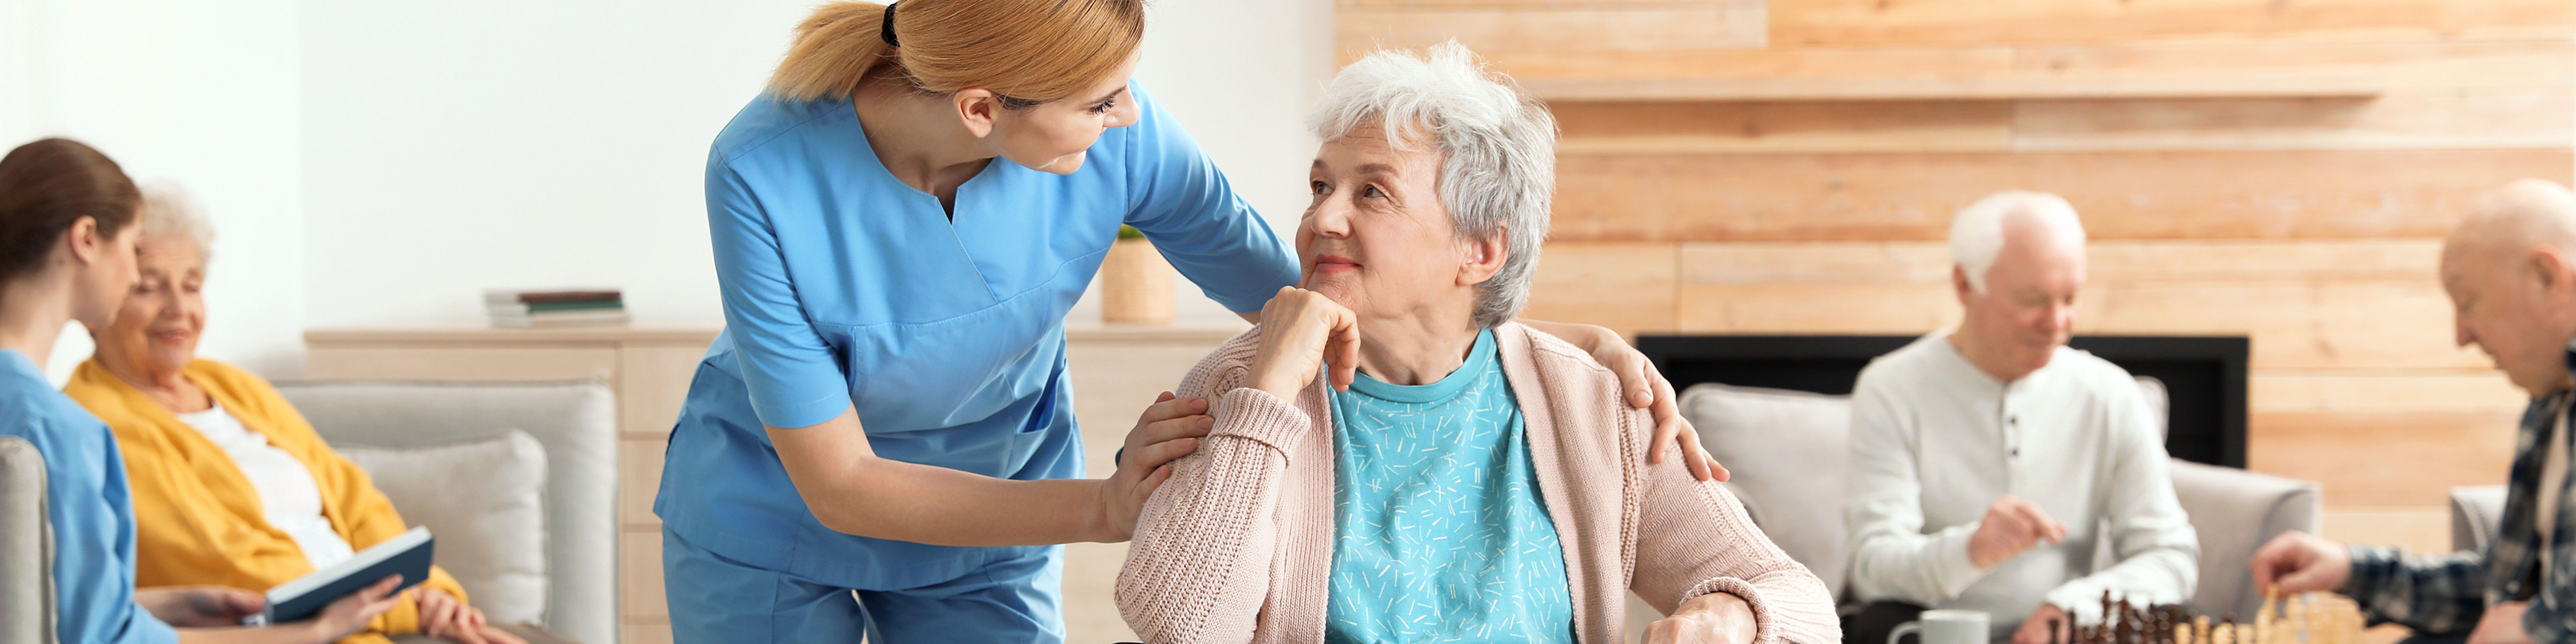 Why Patient-Centered Care Is So Important